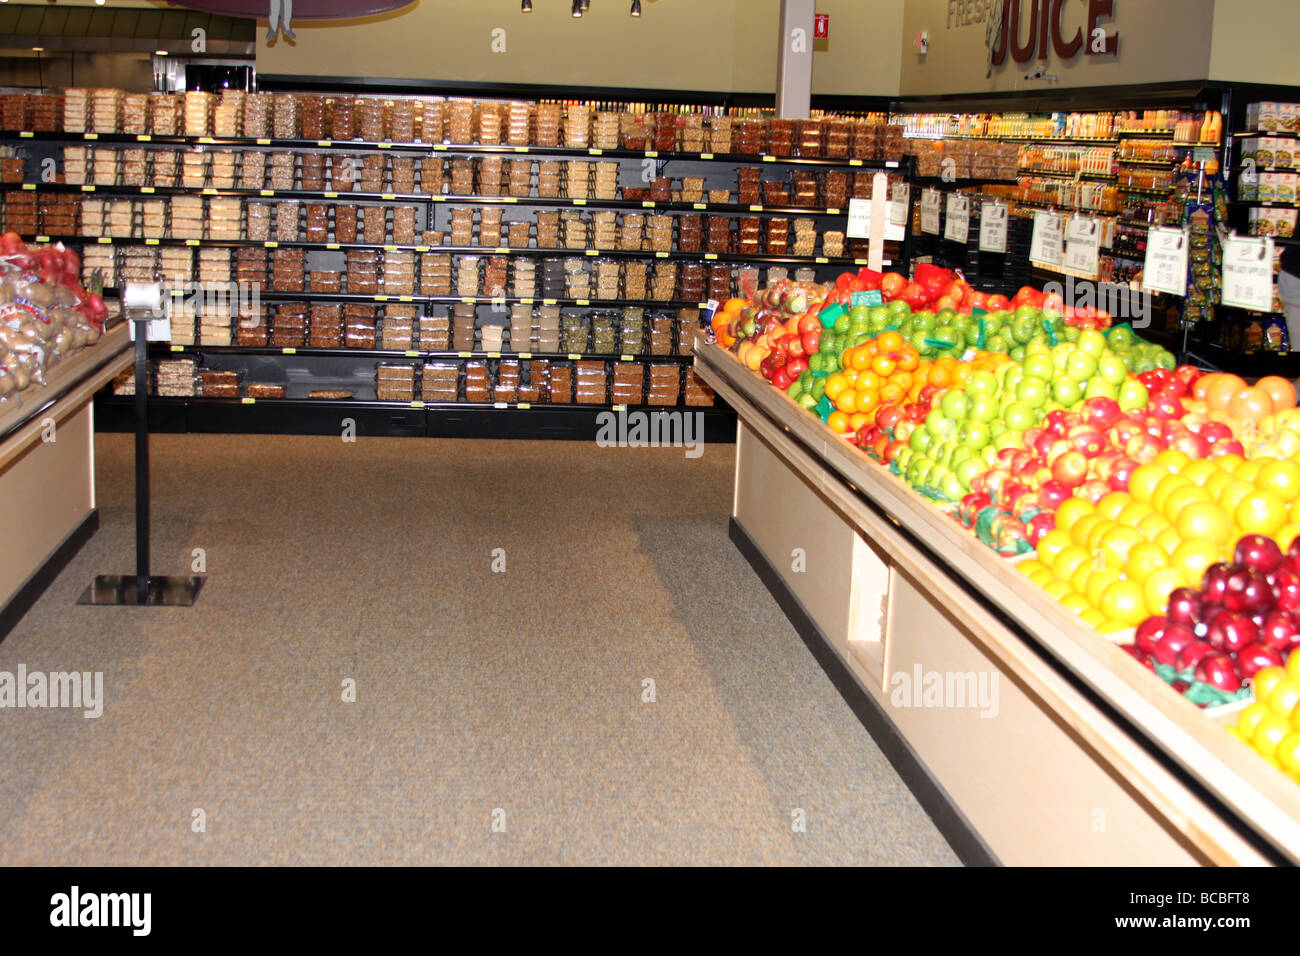 Isles Of Food And Fresh Produce Displayed Inside Grocery Store Stock Photo Alamy